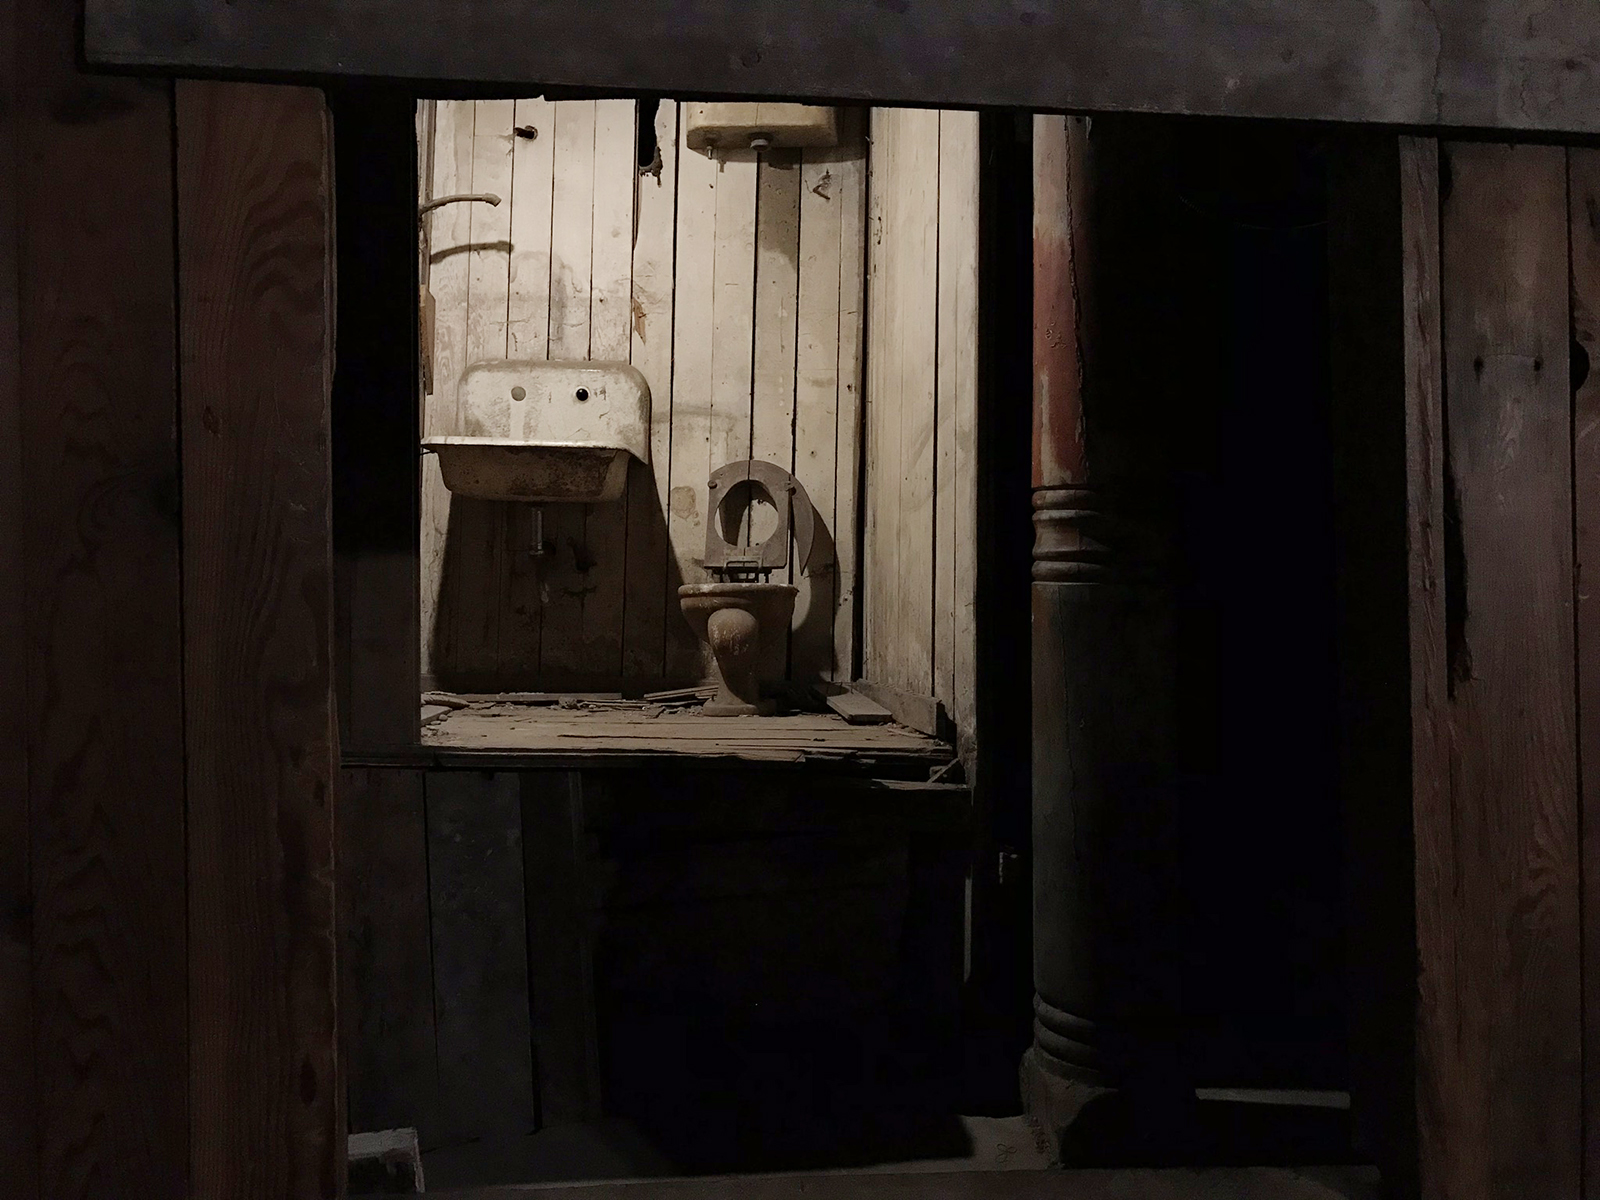 Seattle Underground Tour, Pioneer Square, USA, 2018. Photograph by Tanya Clarke